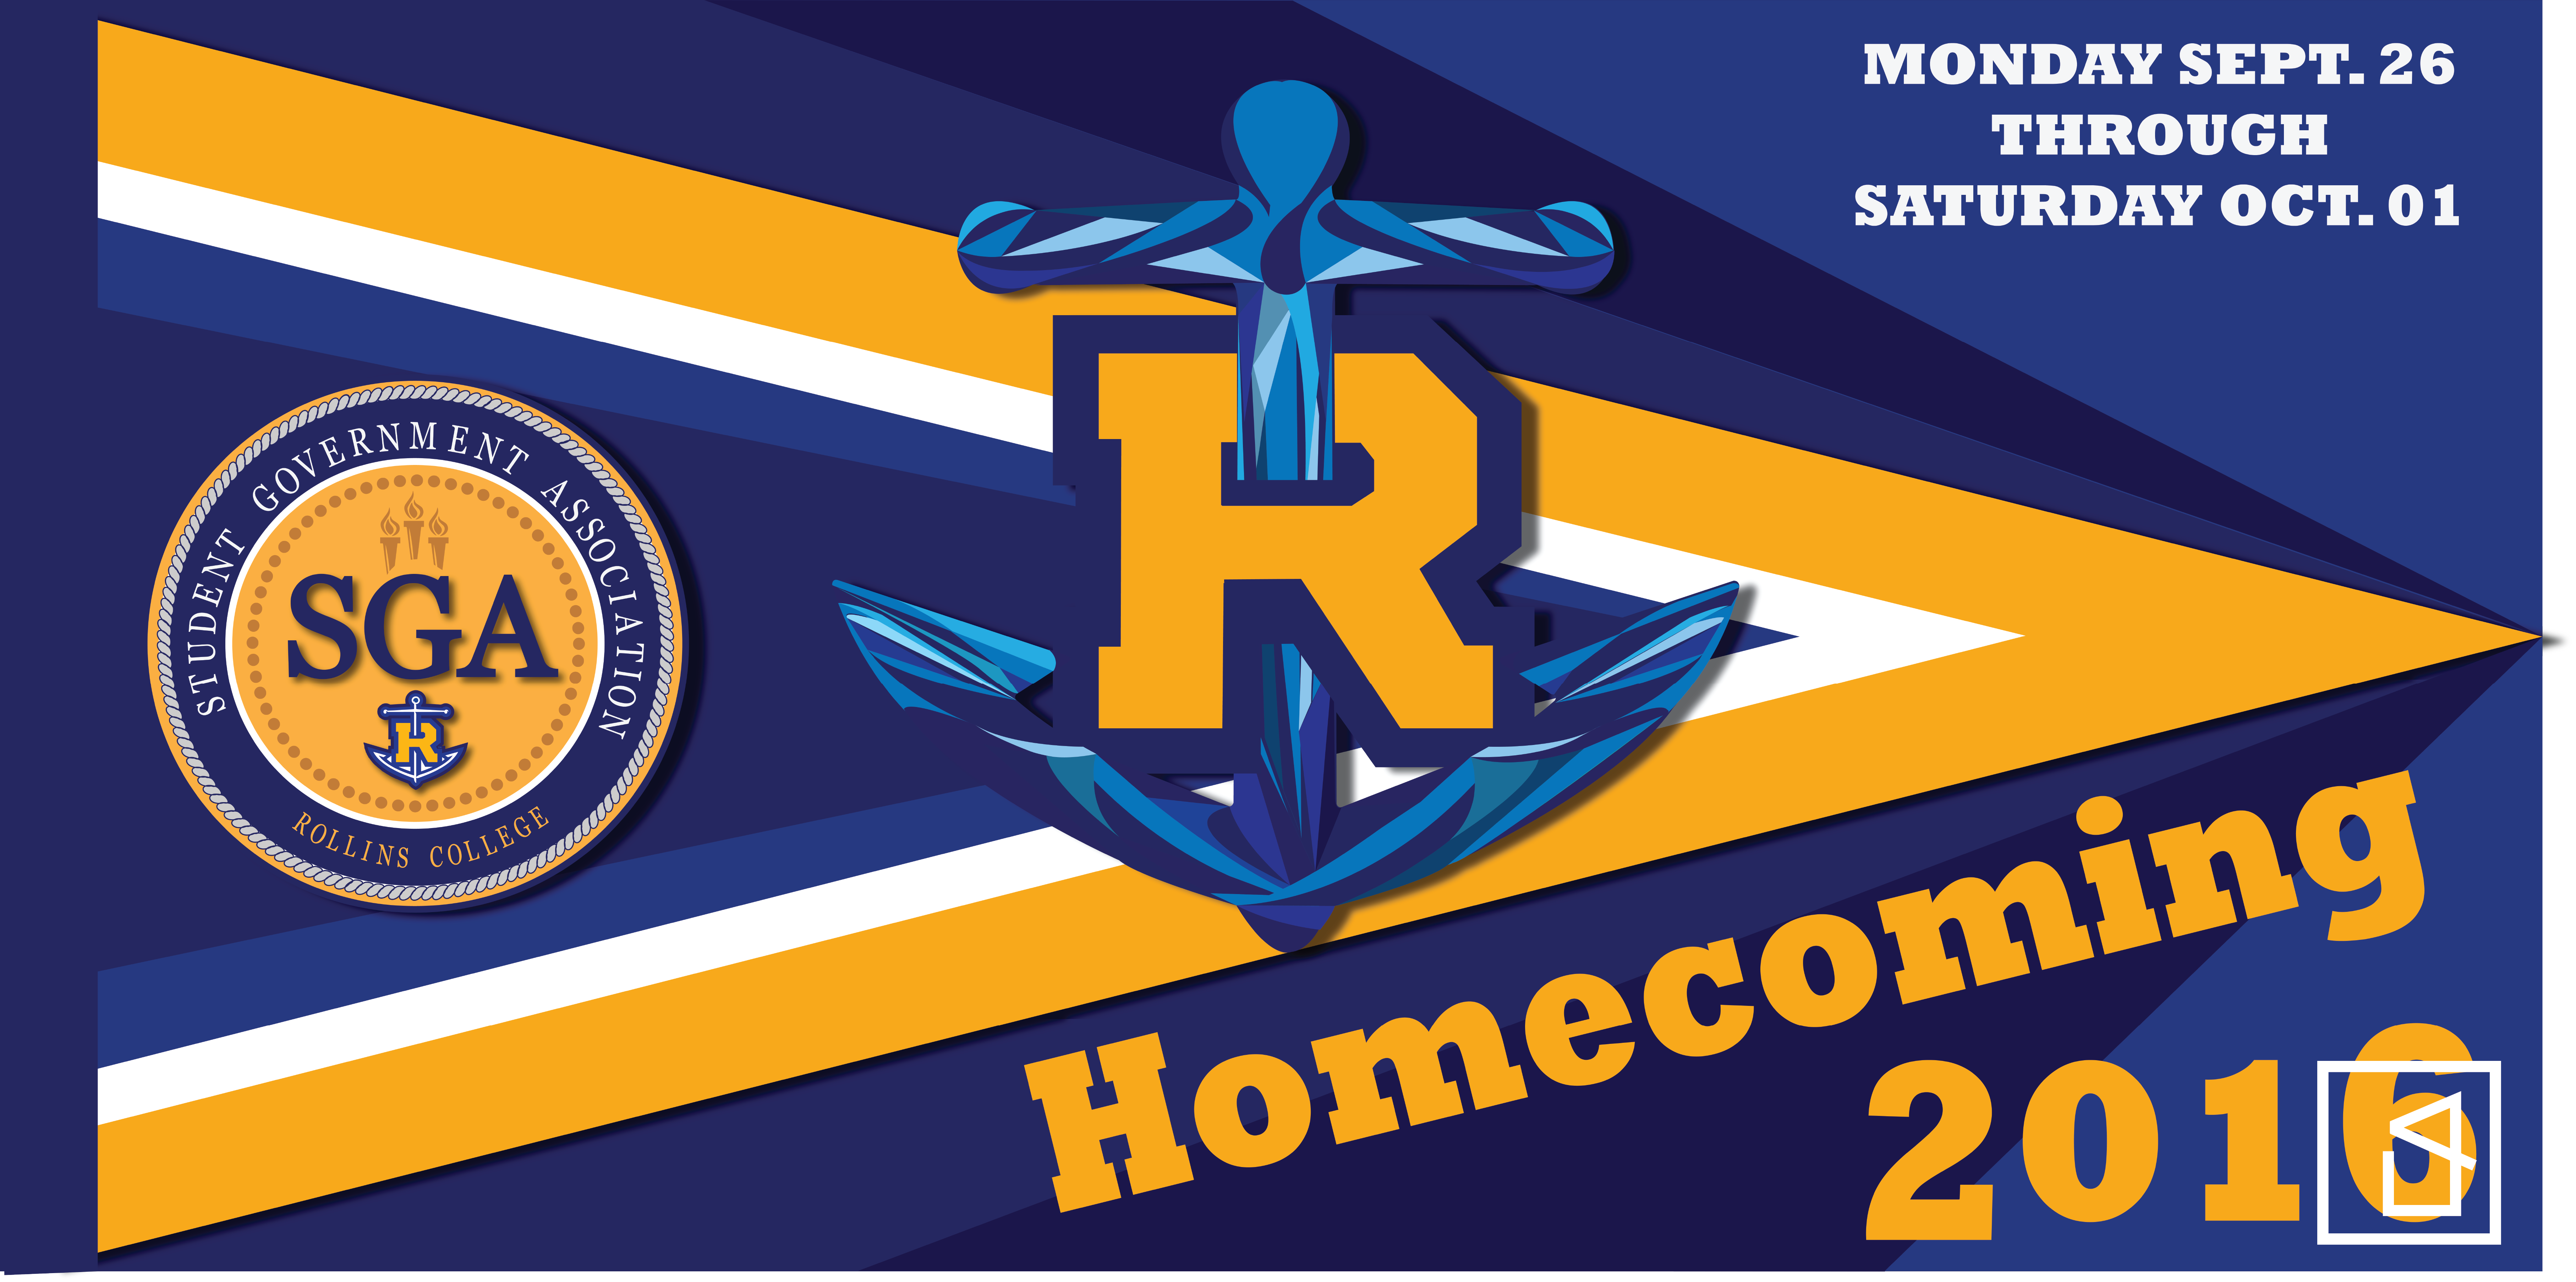 Homecoming Banner